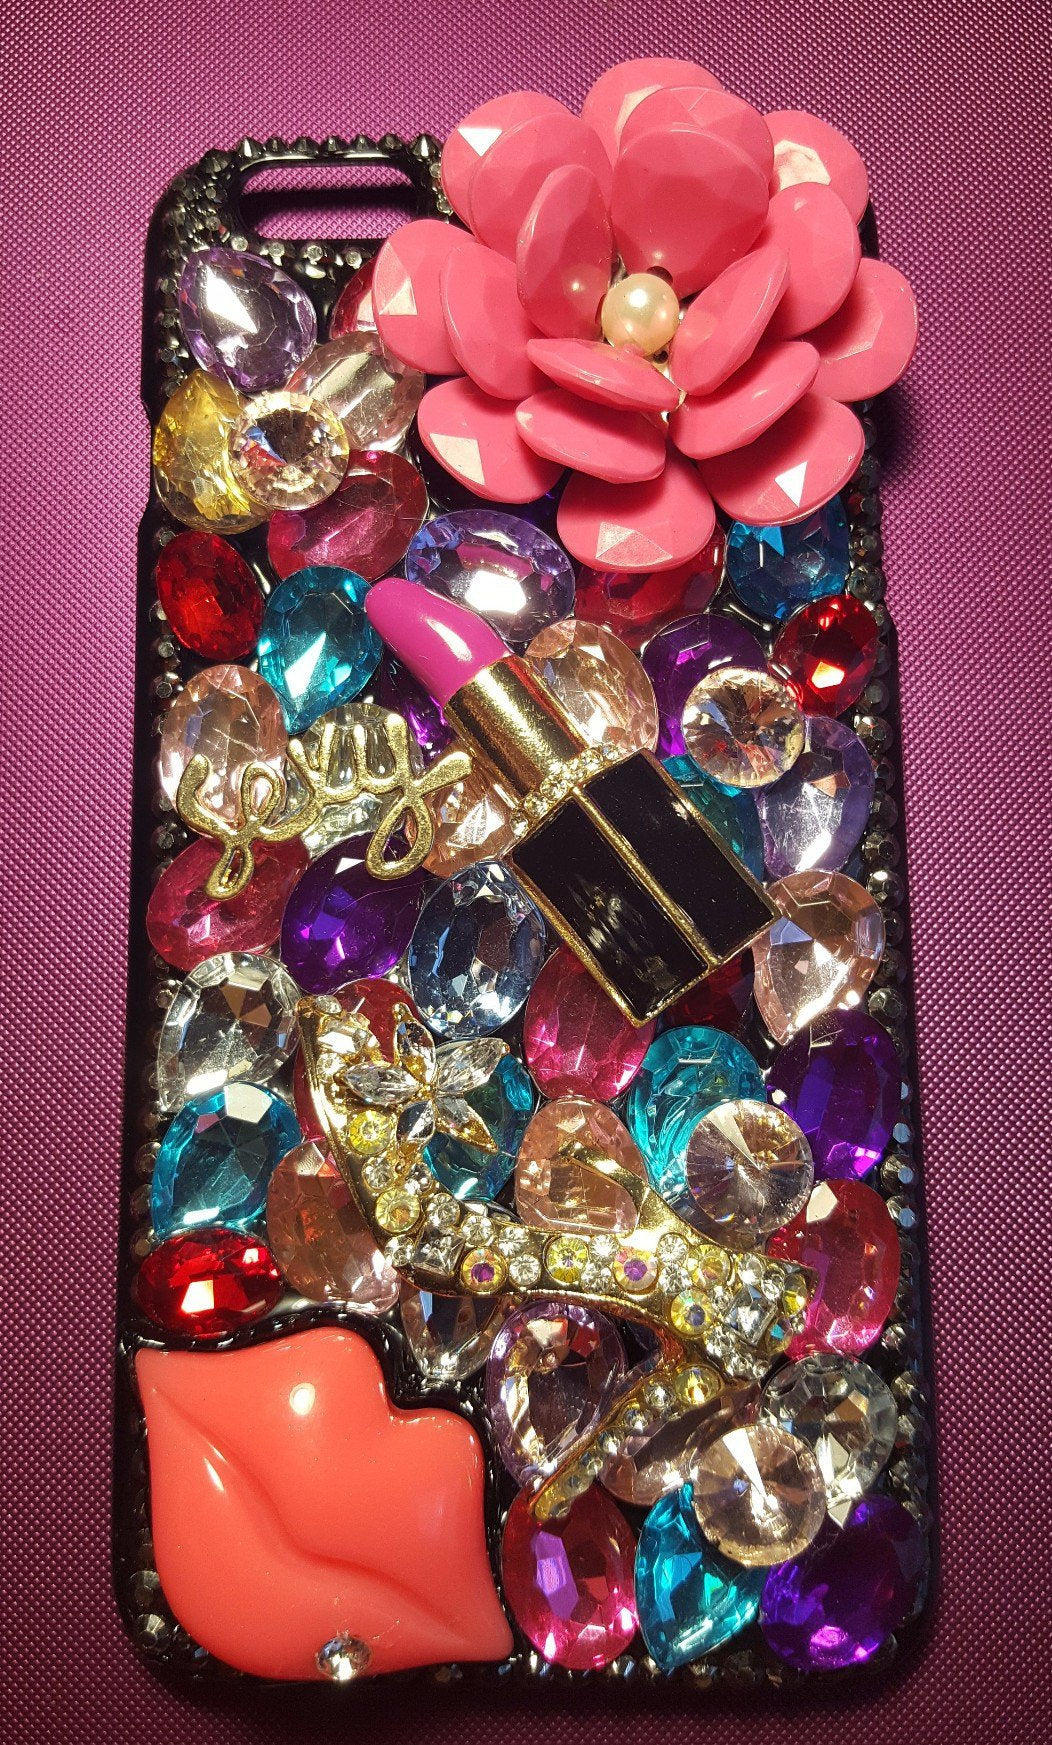 Bedazzled Diva iPhone 6 Plus and 6S Plus Case - Get Me Bedazzled 77b51efa25